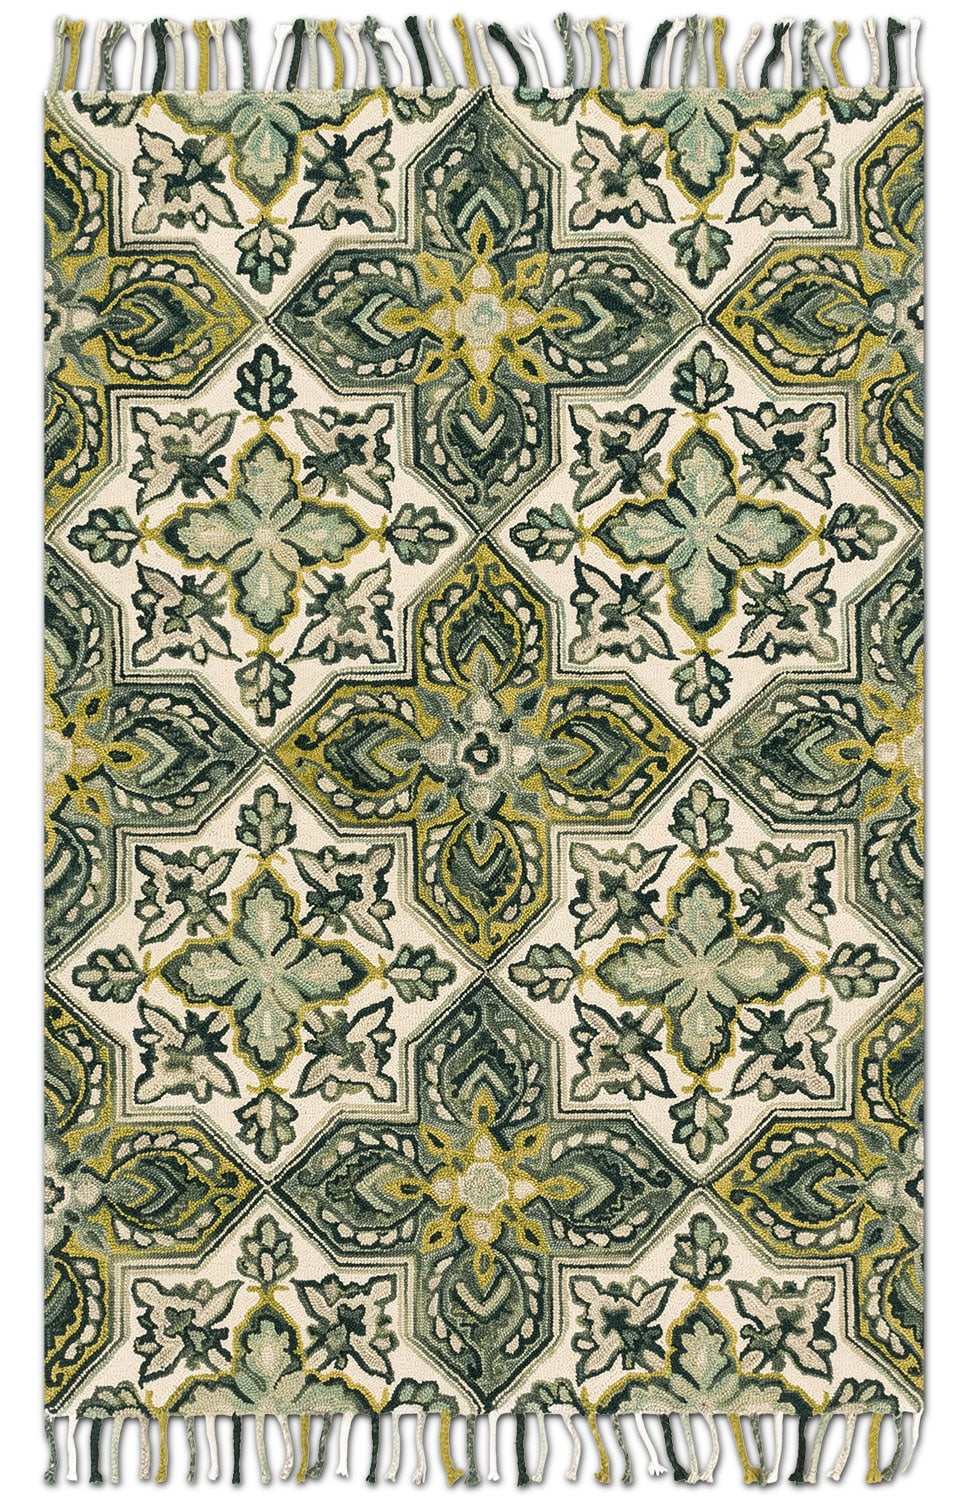 Rugs - Brushstroke 9' x 13' Rug - Ivory and Emerald